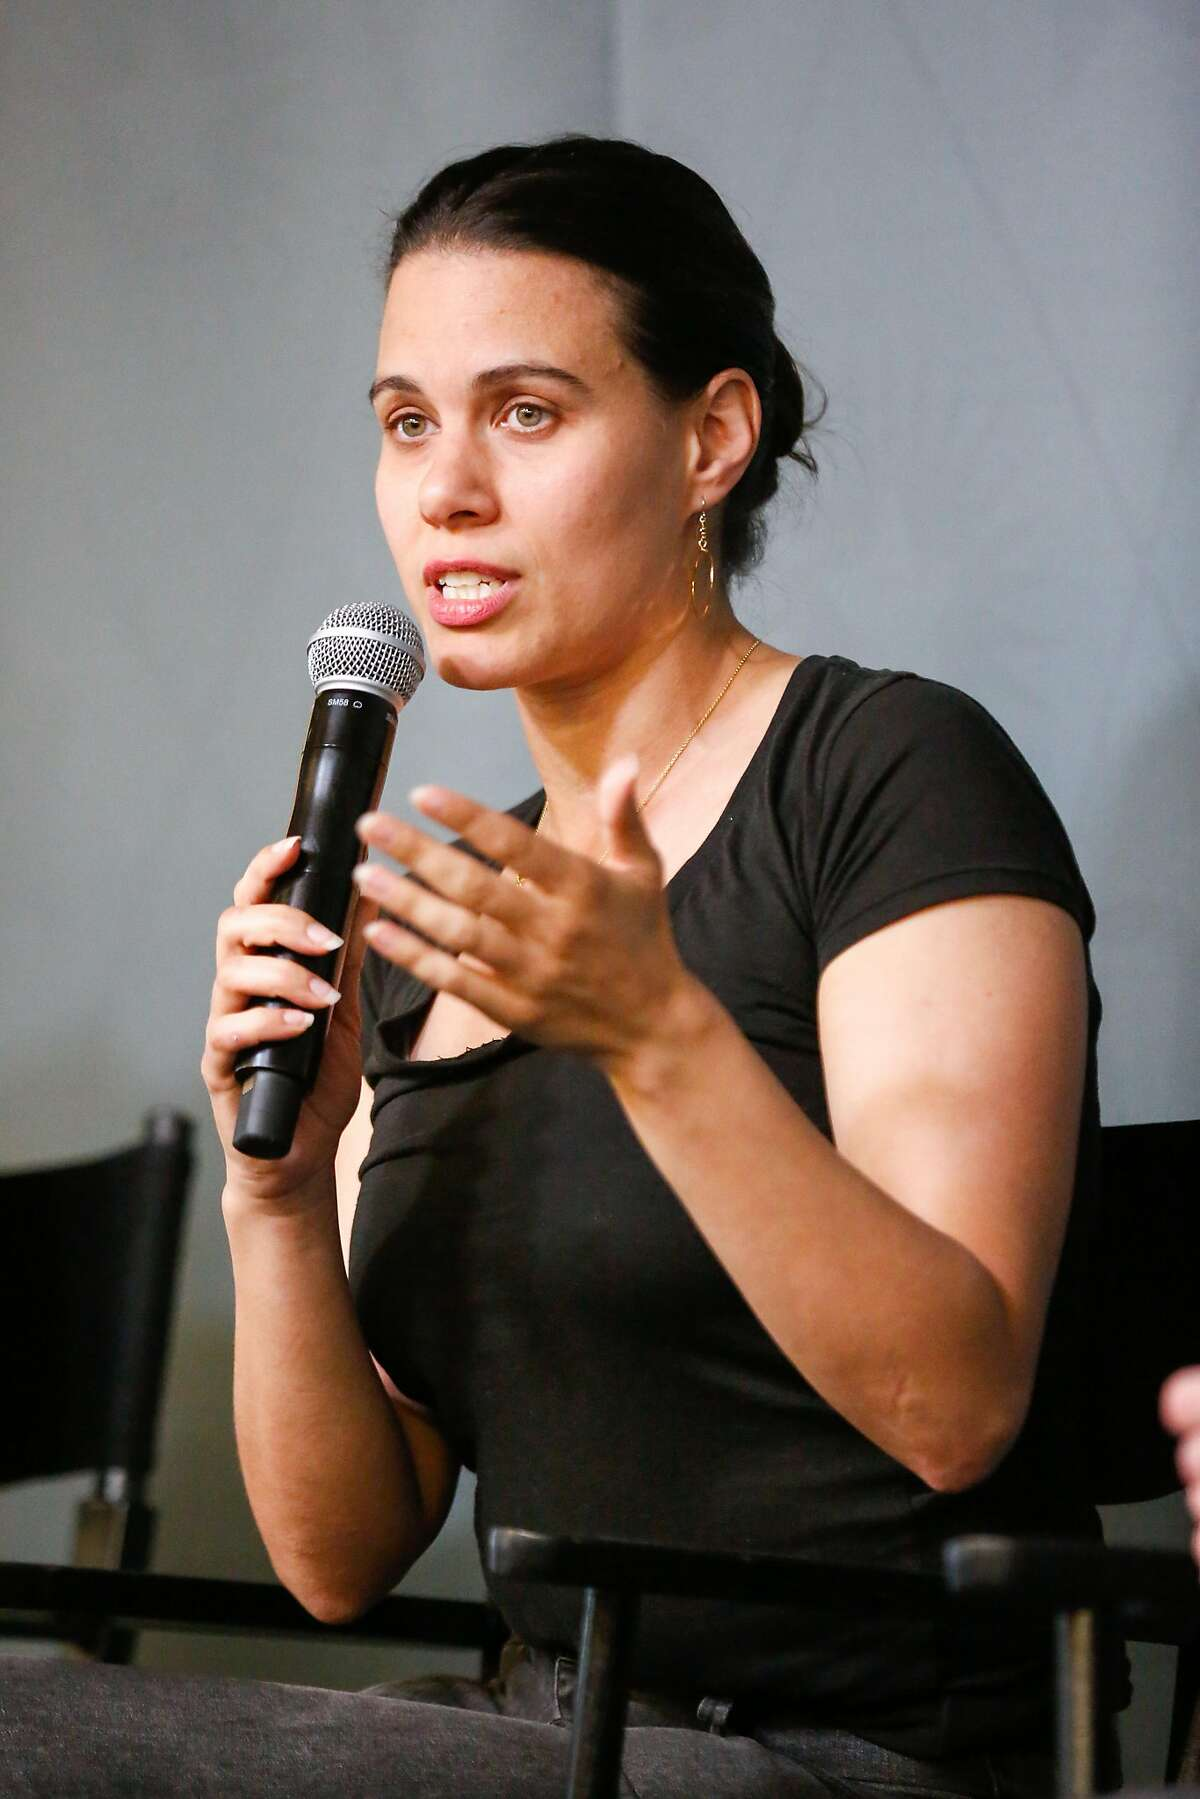 Sonja Trauss, founder SF Bay Area Renters� Federation, speaks during a panel discussion on housing at the Yelp headquarters on Thursday, April 18, 2018 in San Francisco, California.